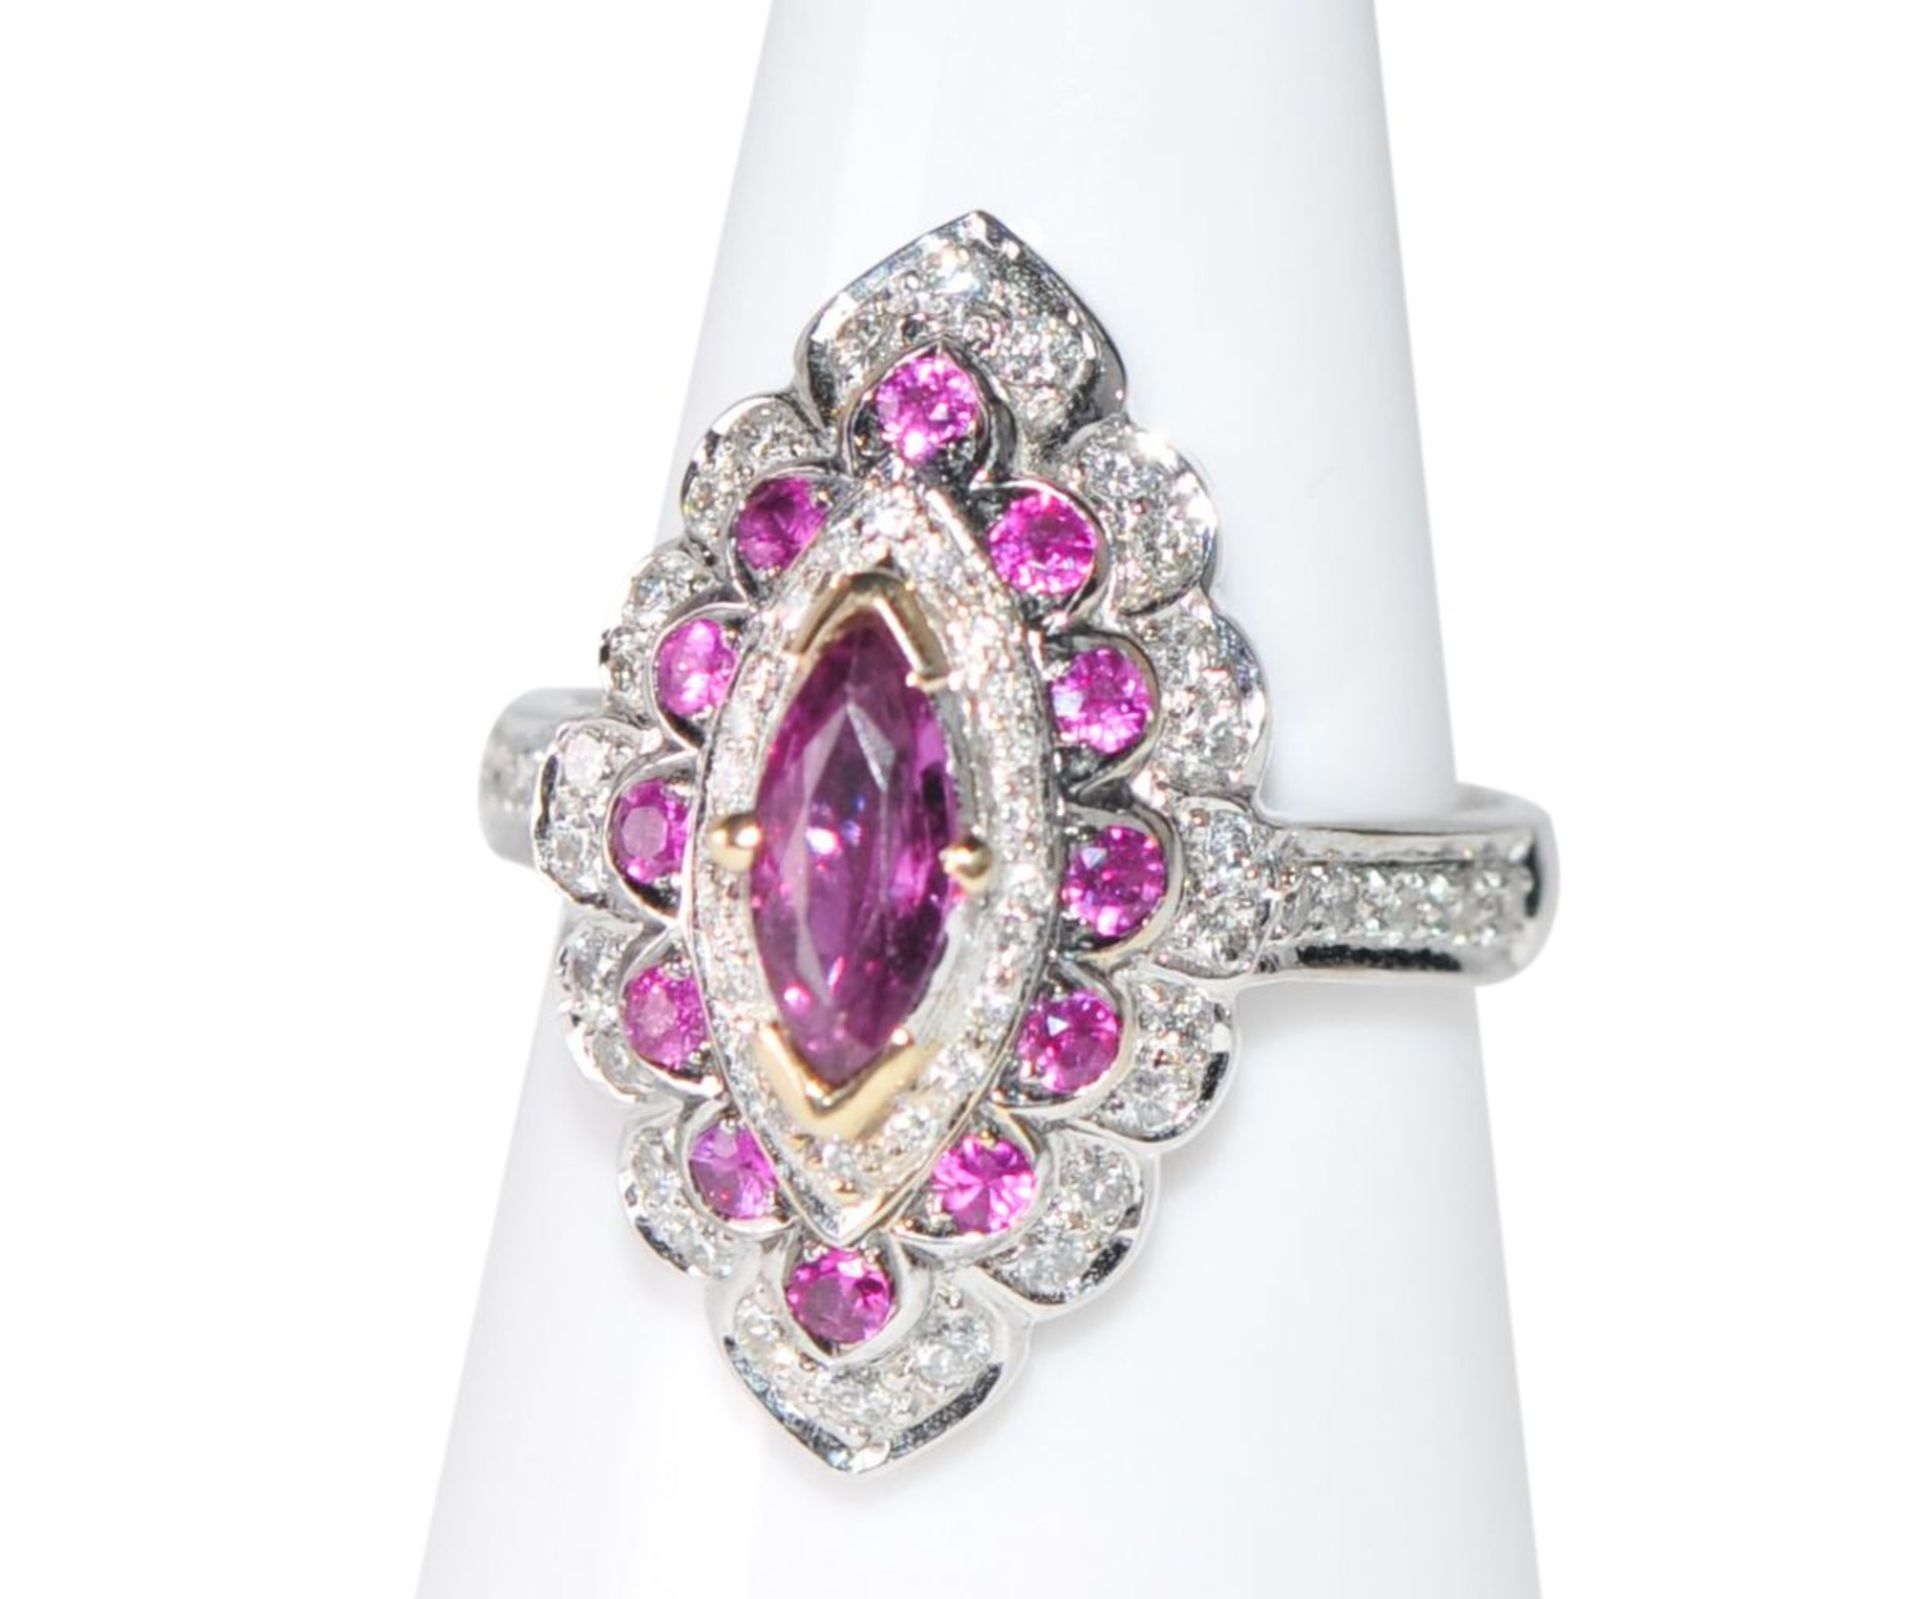 Los 108 - Brilliant ring with ruby18Kt white gold ring with diamonds total carat weight approx. 0.54ct,